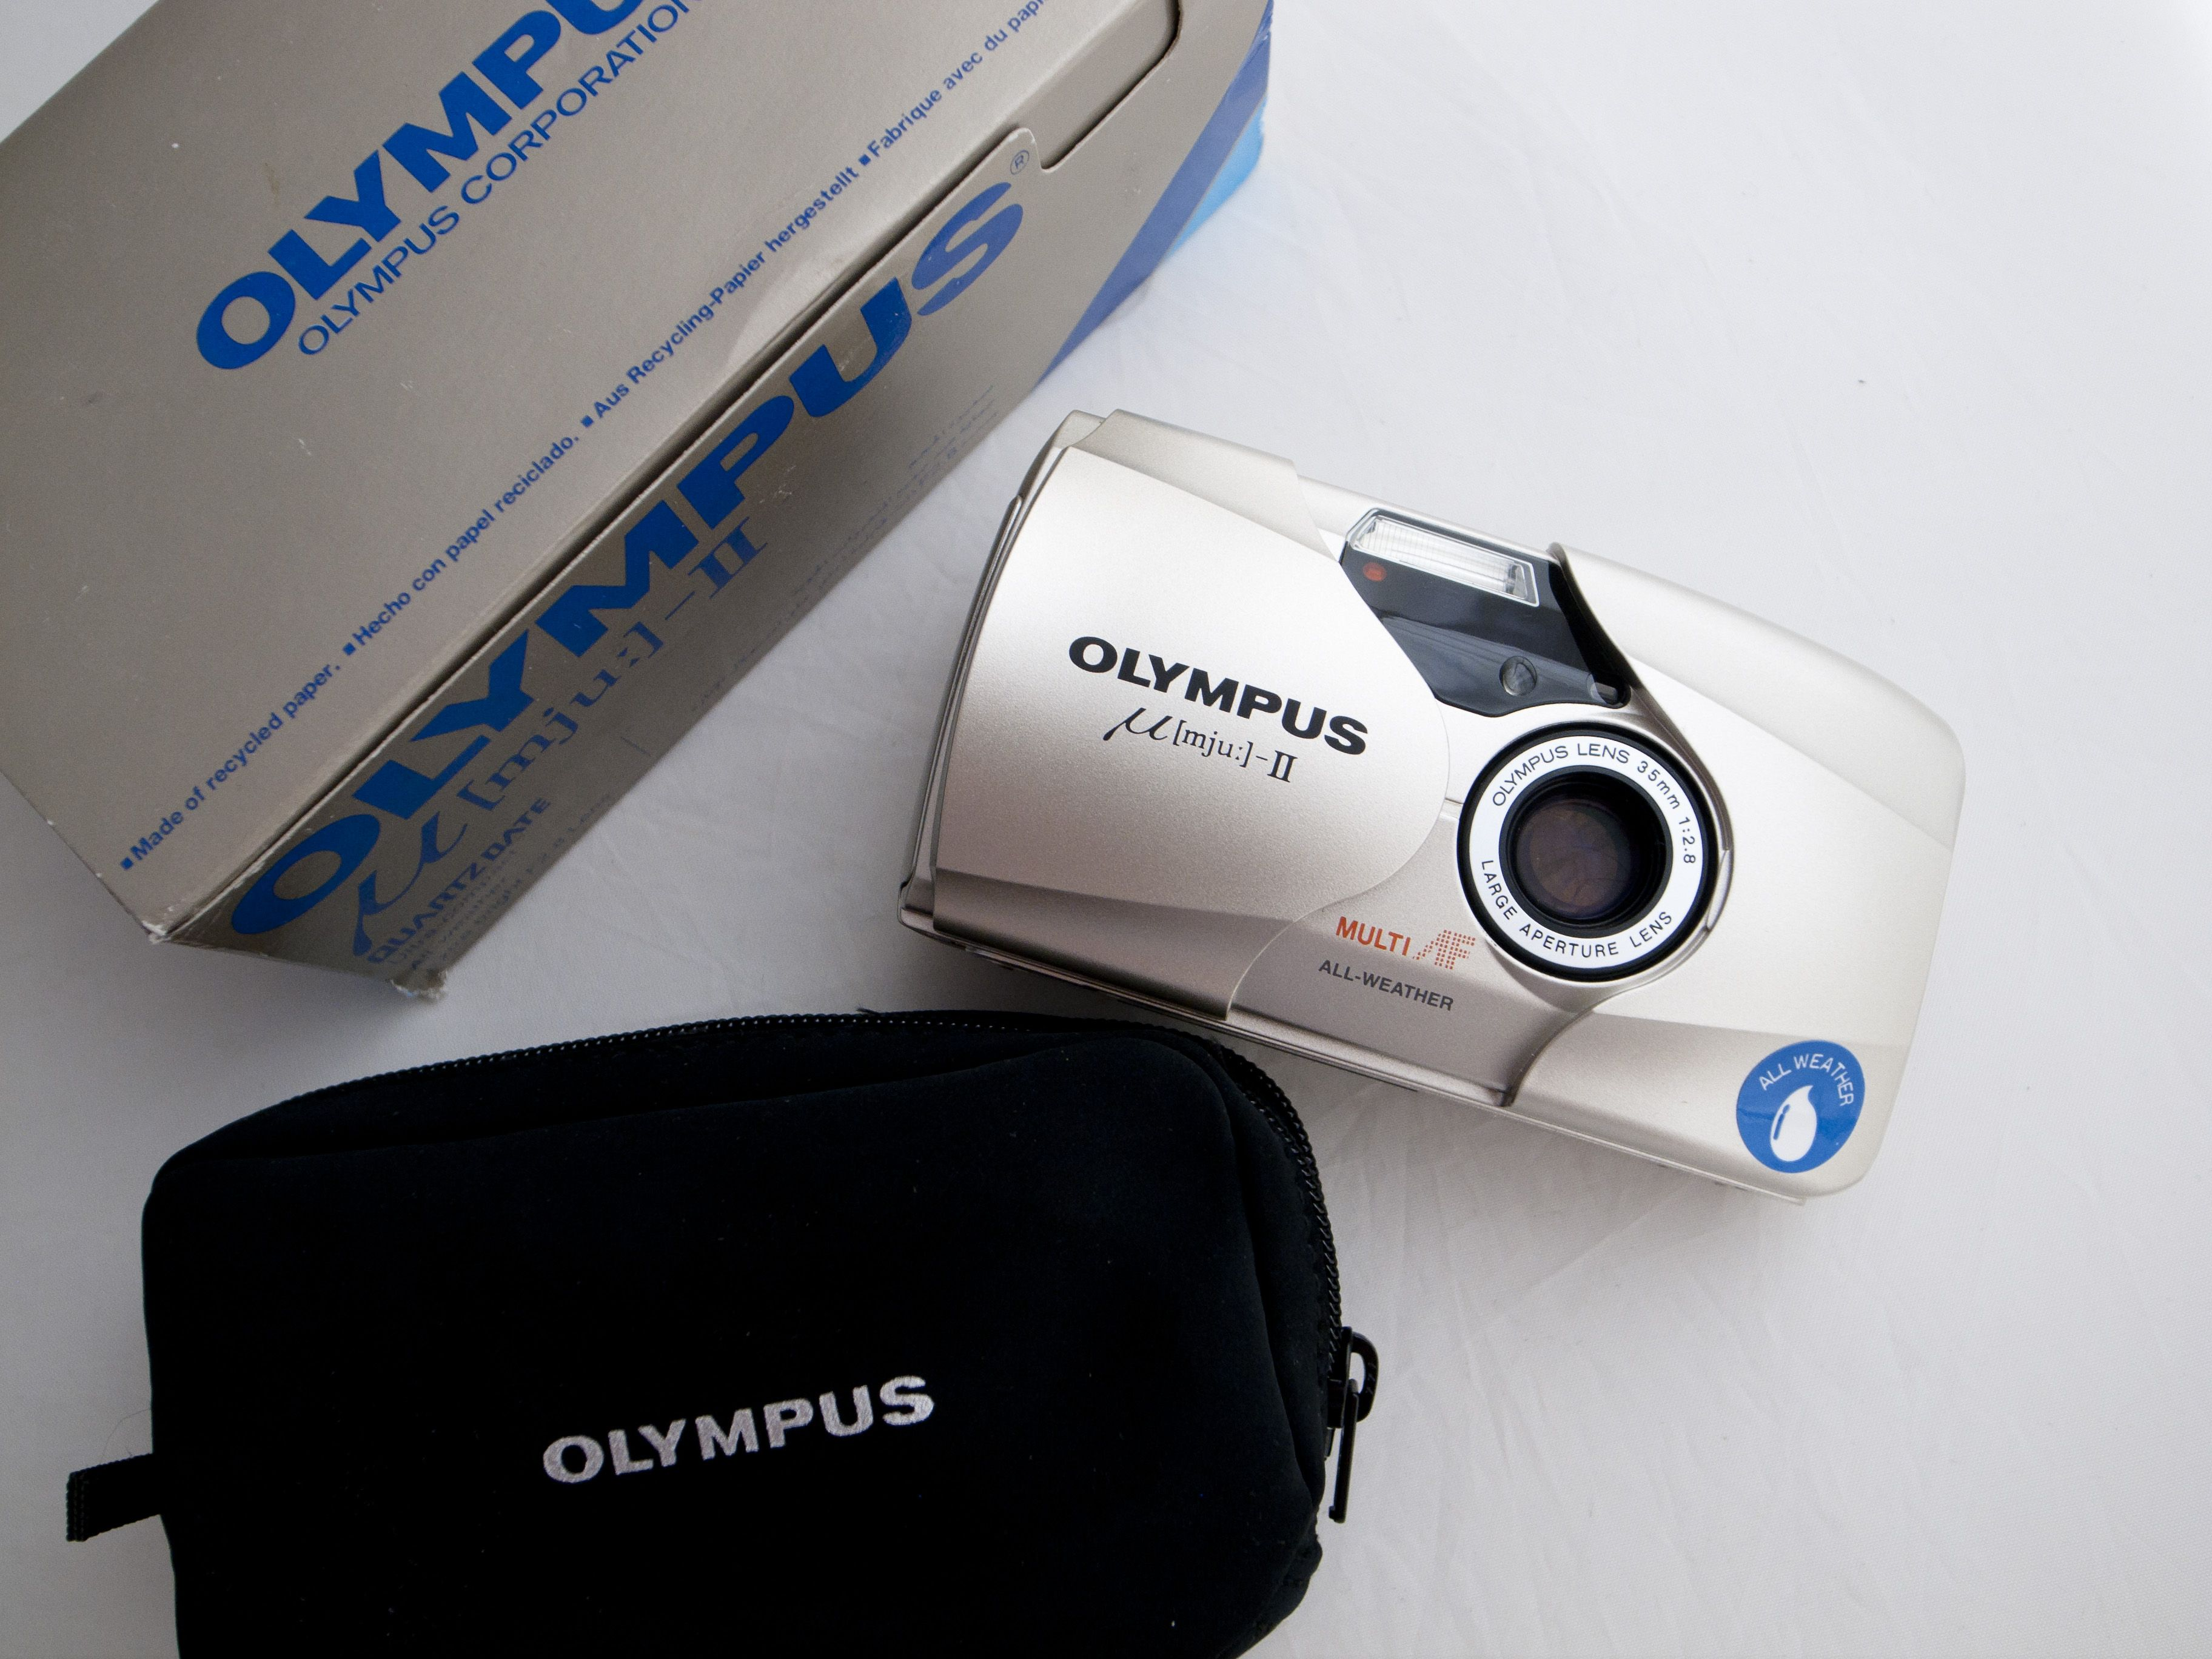 The first camera in my life, sweet memory.